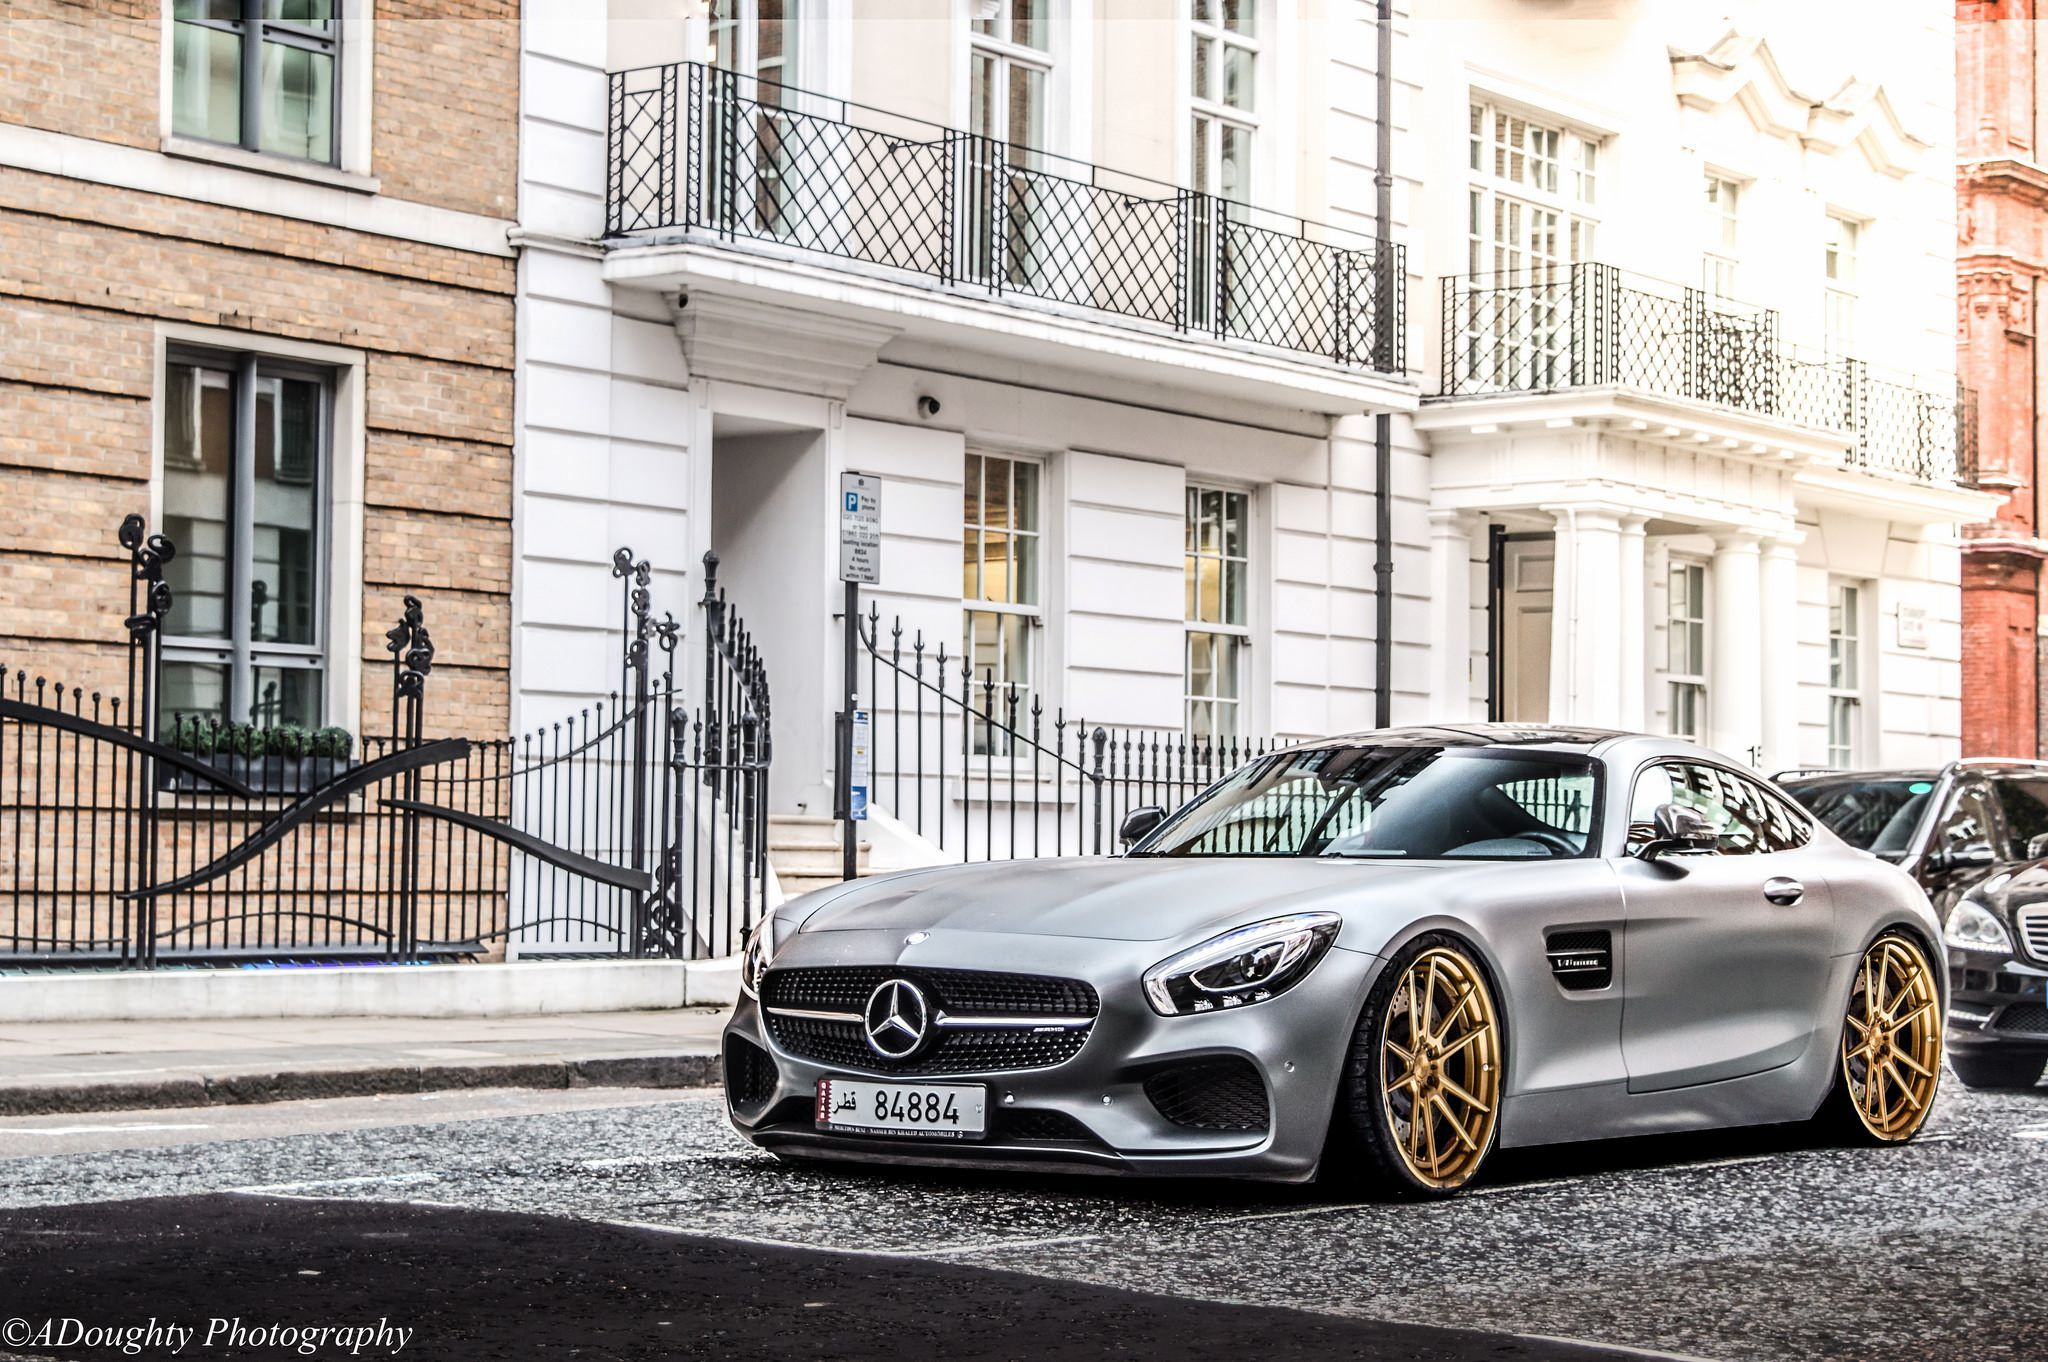 Mercedes Amg Gt S Front Side View Cars Car Mercedes Amg Mercedesamg Supercars Awesome Mercedes Amg Mercedes Amg Gt S Mercedes